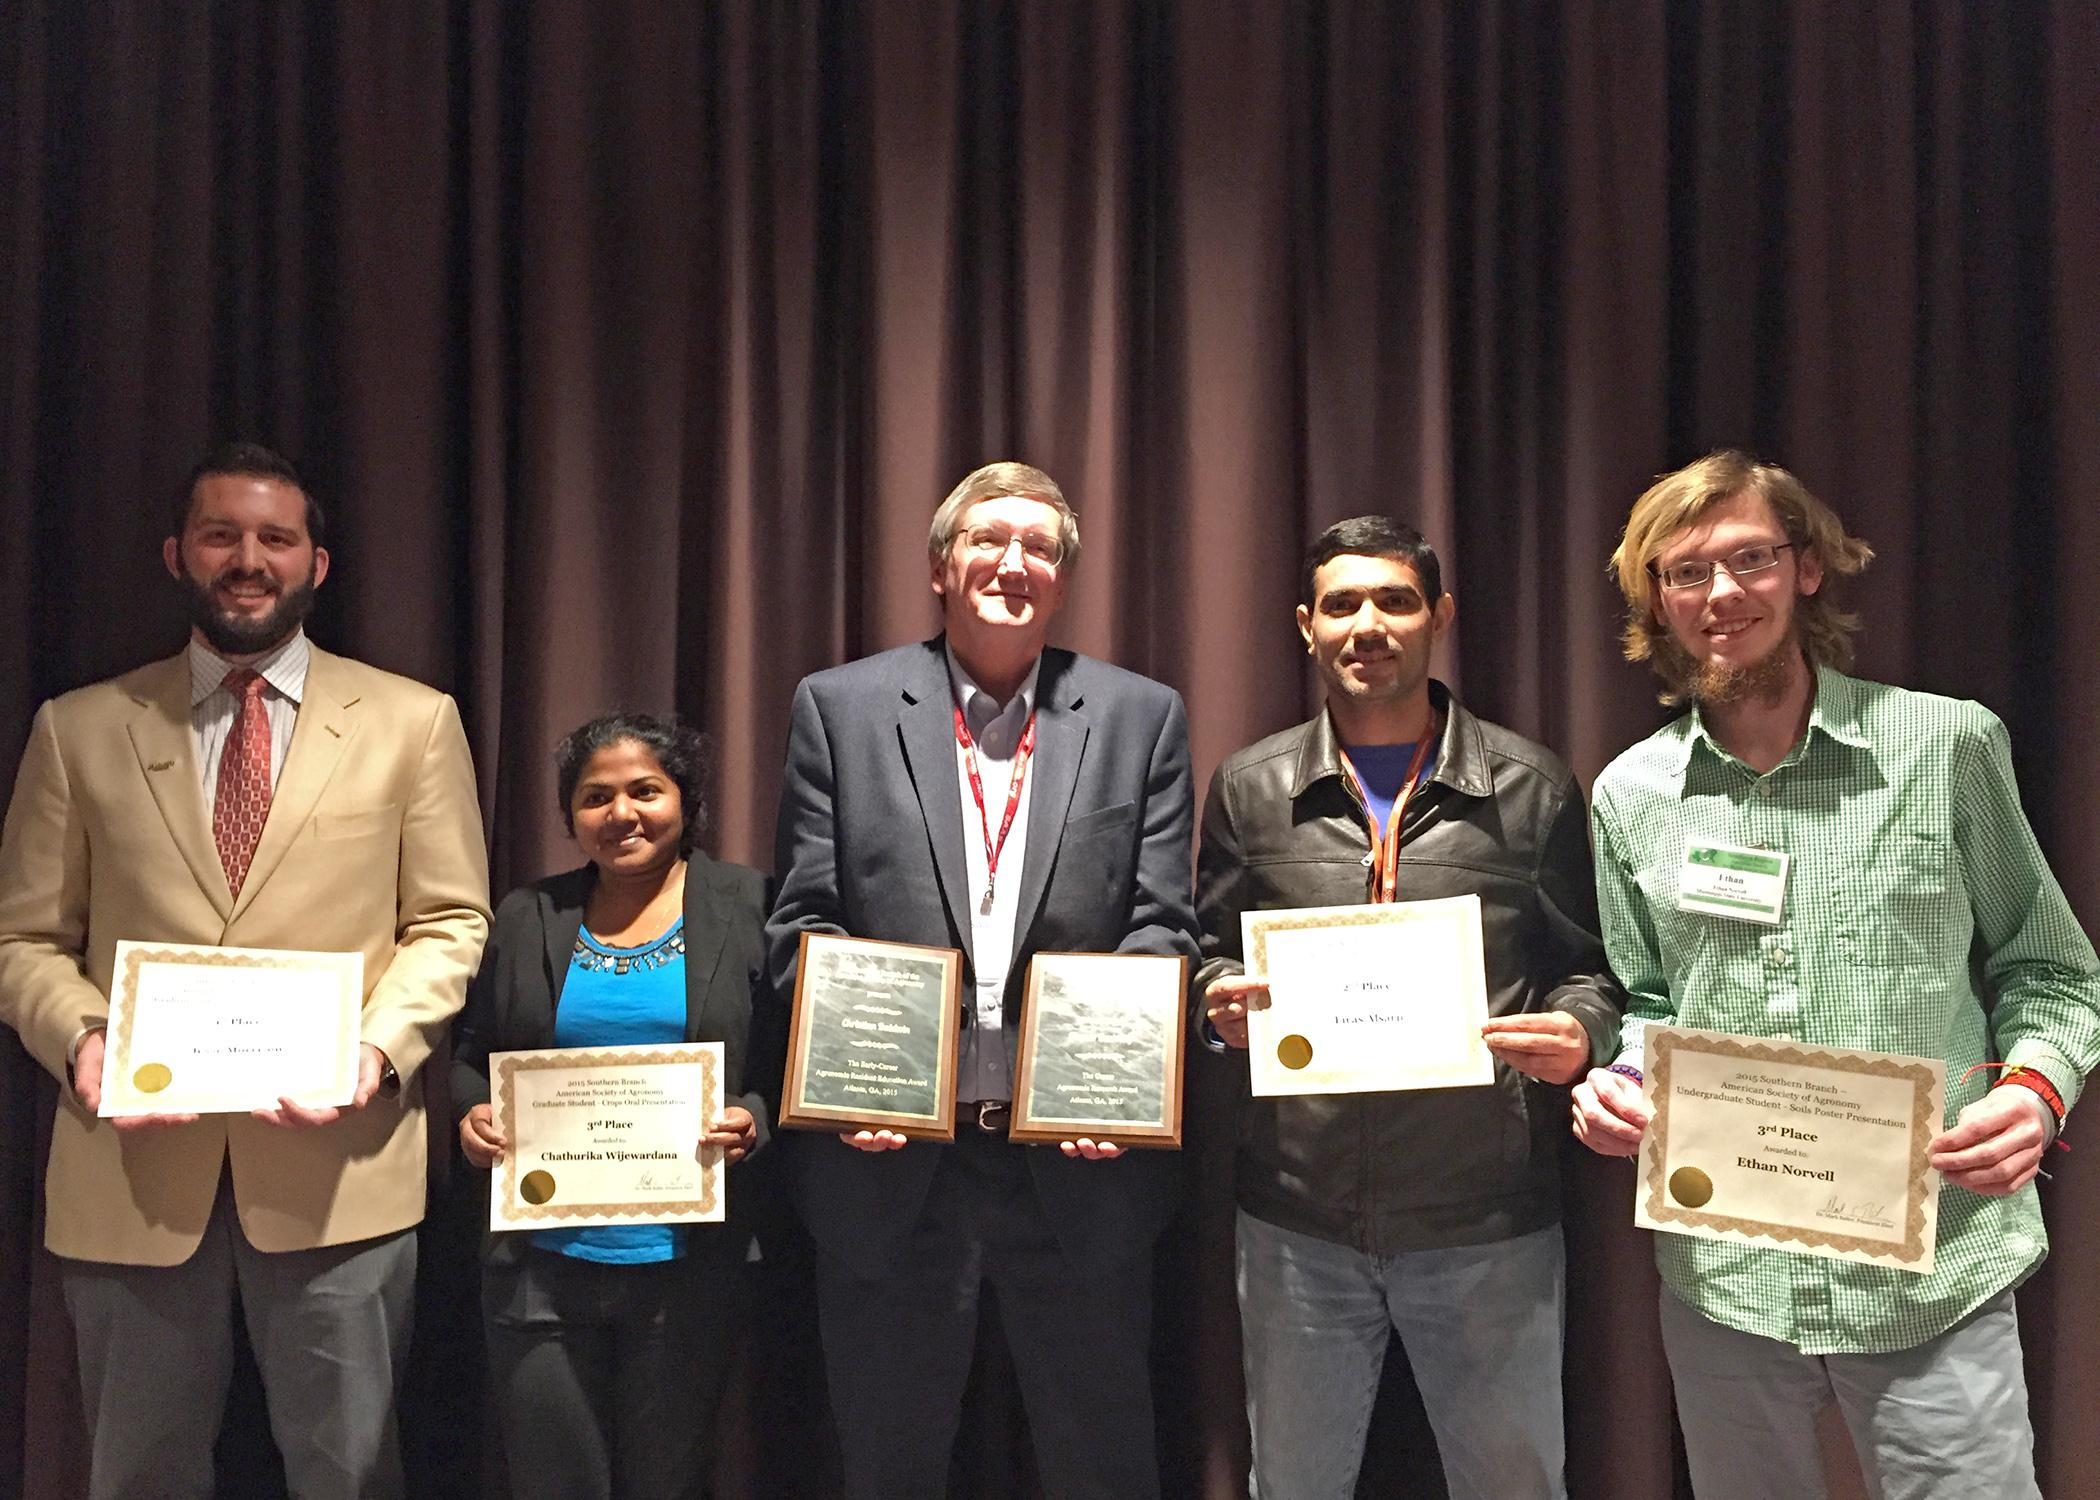 Mike Phillips, center, head of the Mississippi State University Department of Plant and Soil Sciences, joins faculty members and students from his department displaying awards received during a recent meeting of the Southern Branch of the American Society of Agronomy. Pictured are (from left to right) Jesse Morrison, doctoral student; Chathurika Wijewardana, master's student; Phillips (holding awards for Normie Buehring and Christian Baldwin); Firas Alsajri, doctoral student; and Ethan Norvell, undergraduat